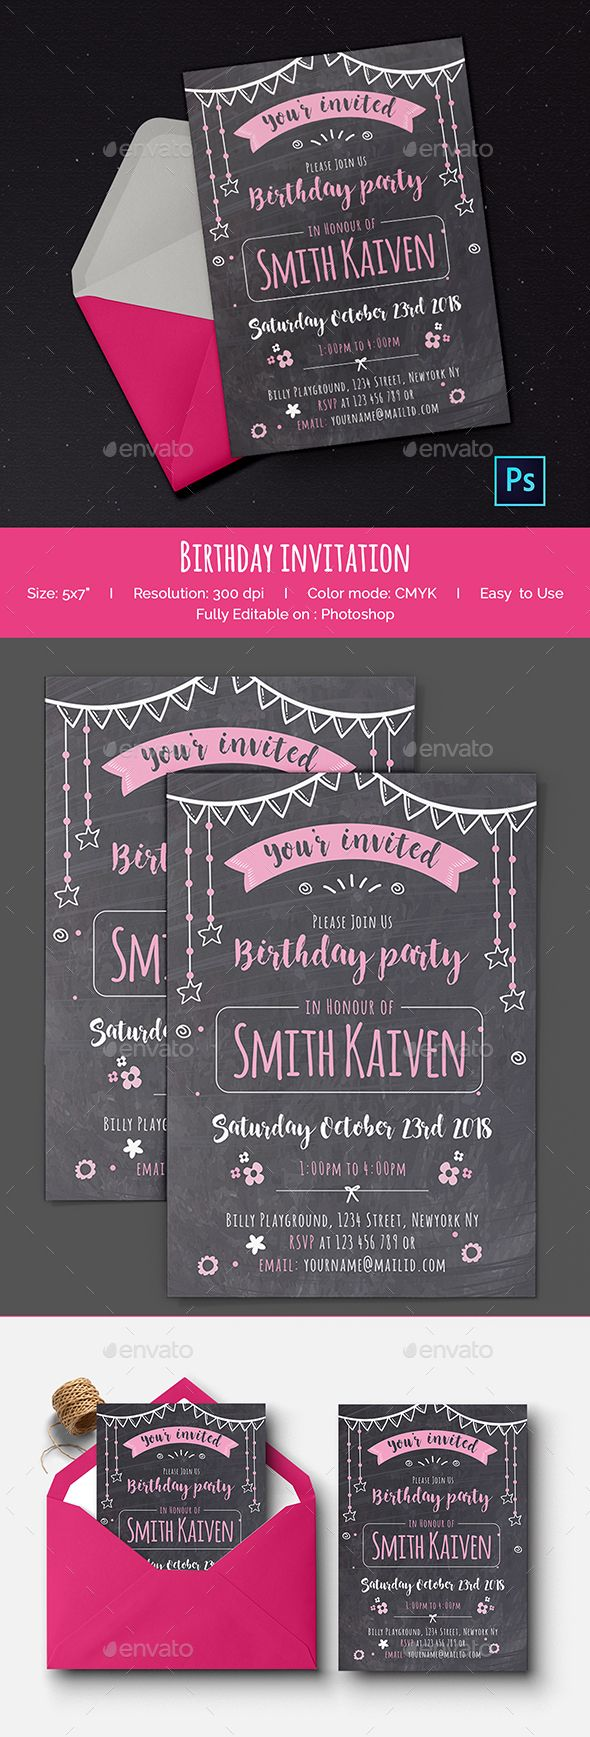 Best Invitation Card Templates Images On Pinterest Card - Birthday invitation template graphicriver